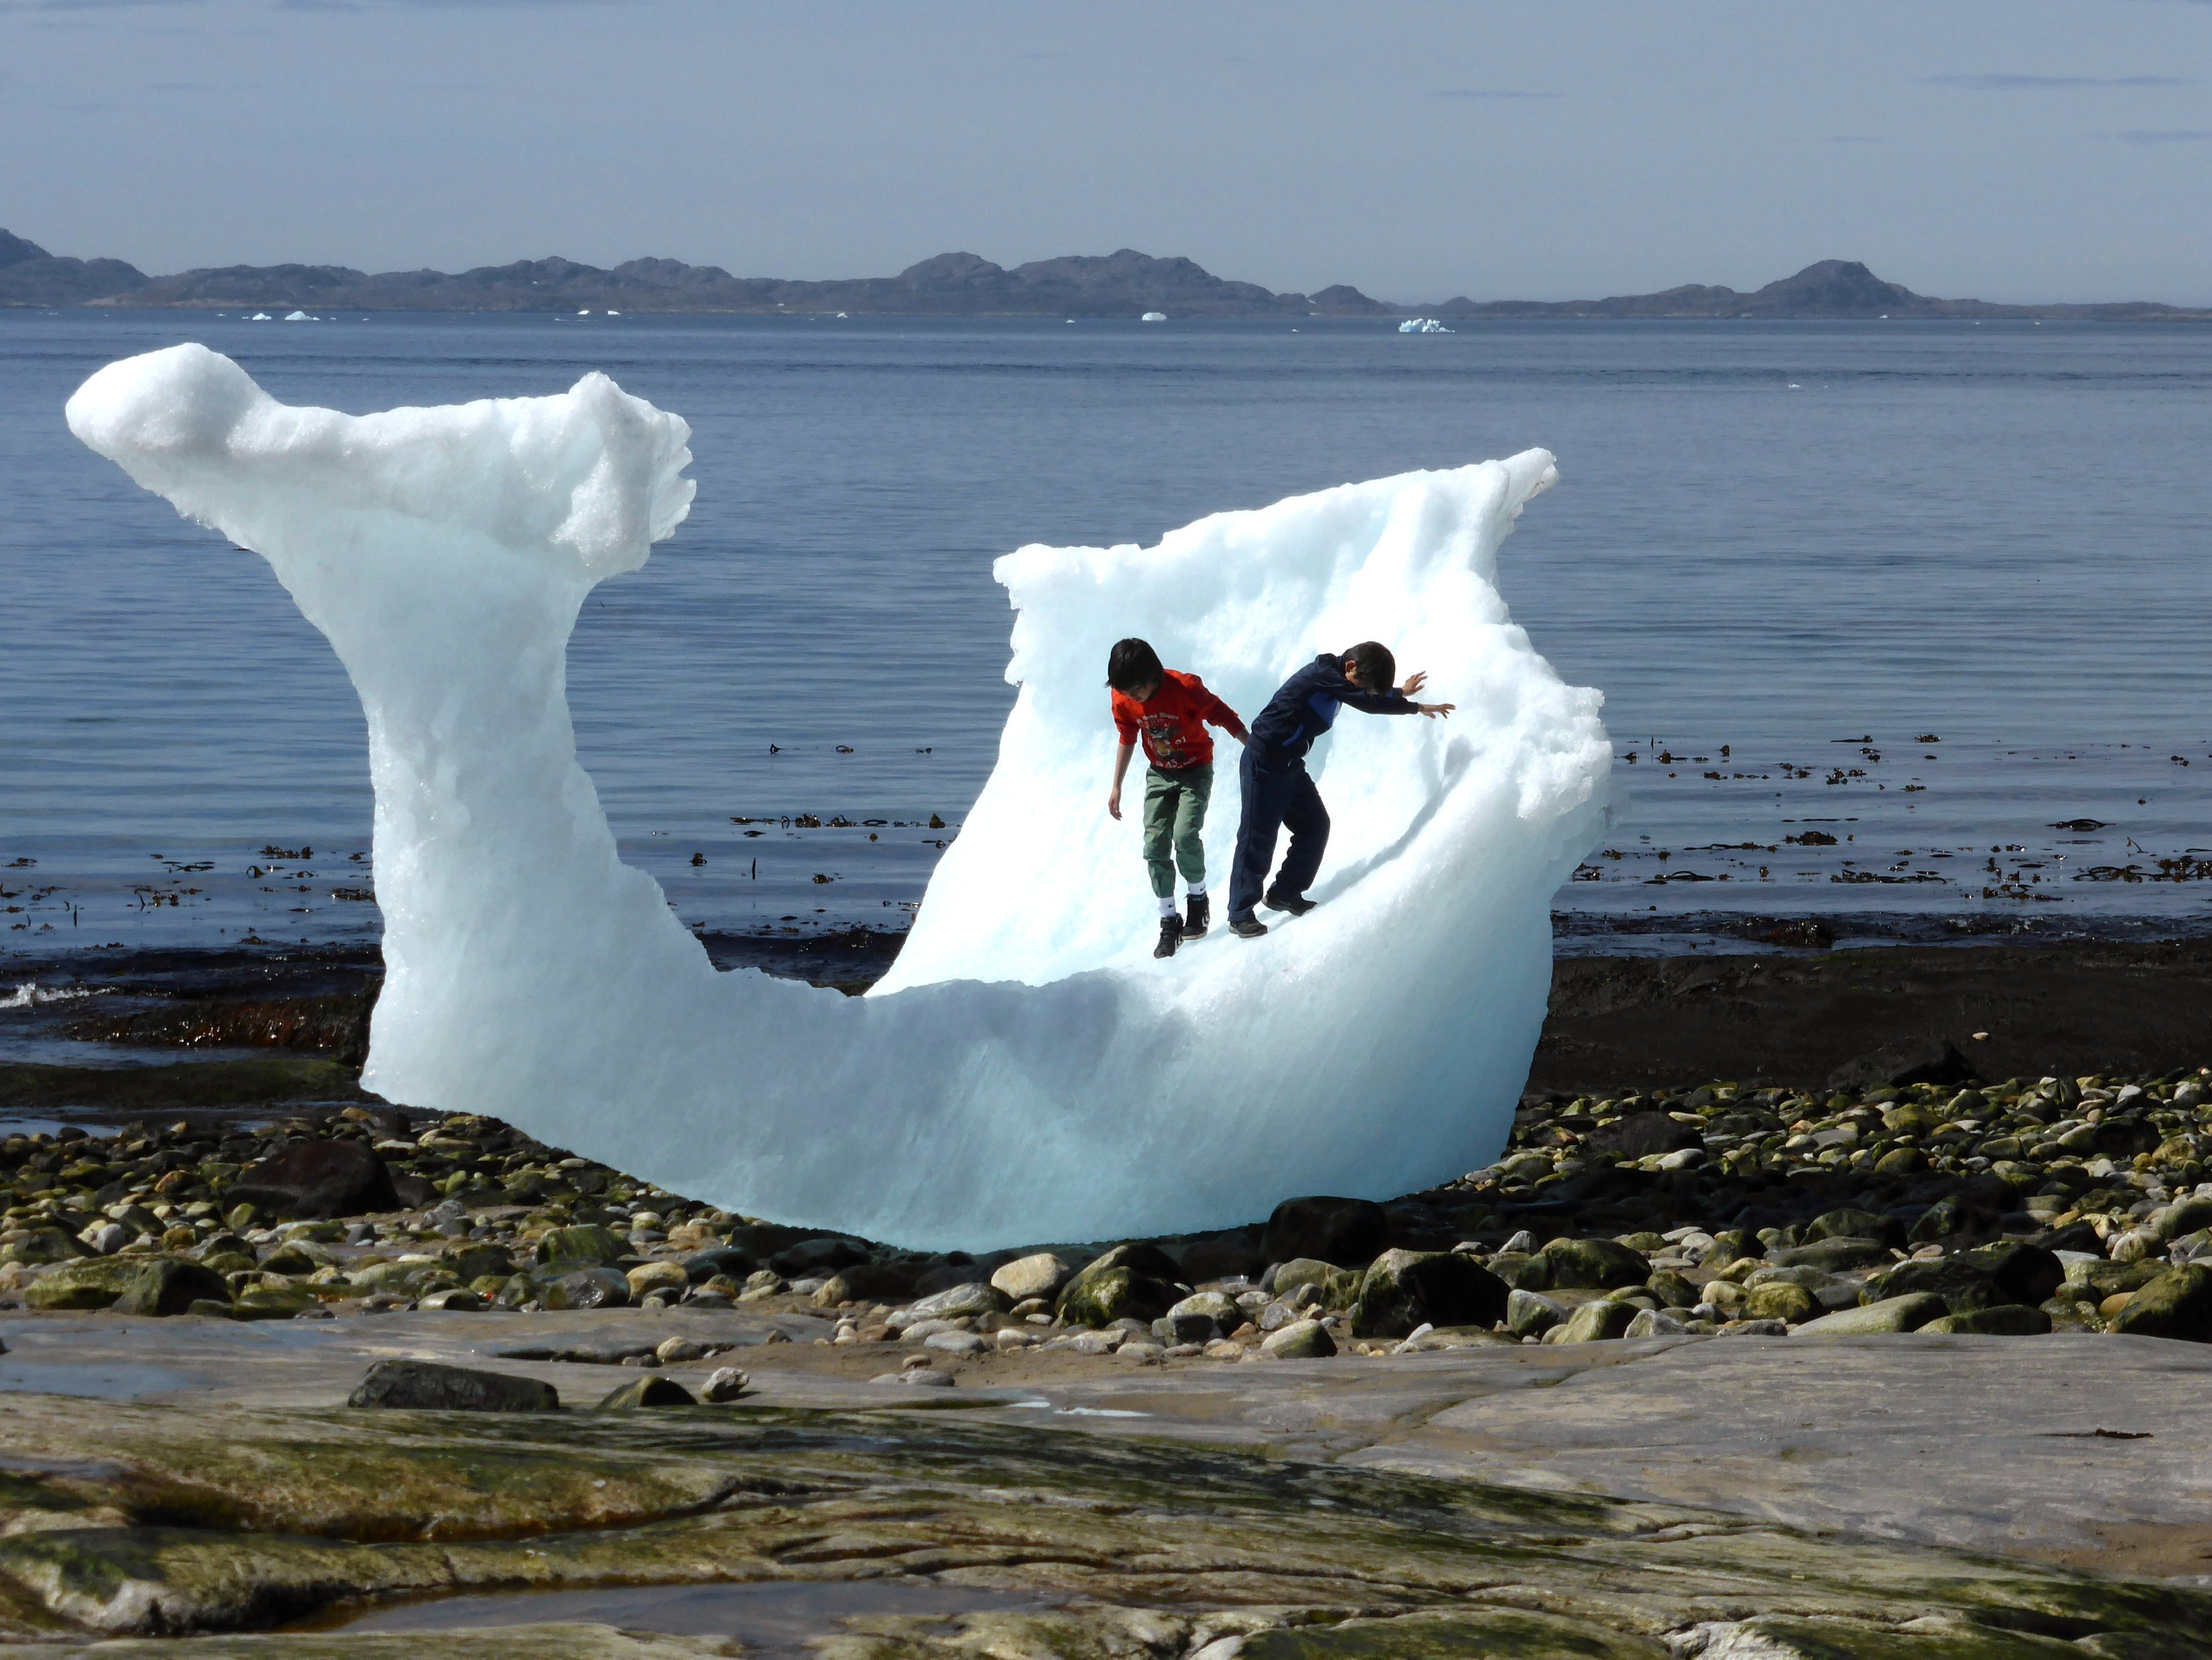 Cold tolerance among Inuit may come from extinct human relatives